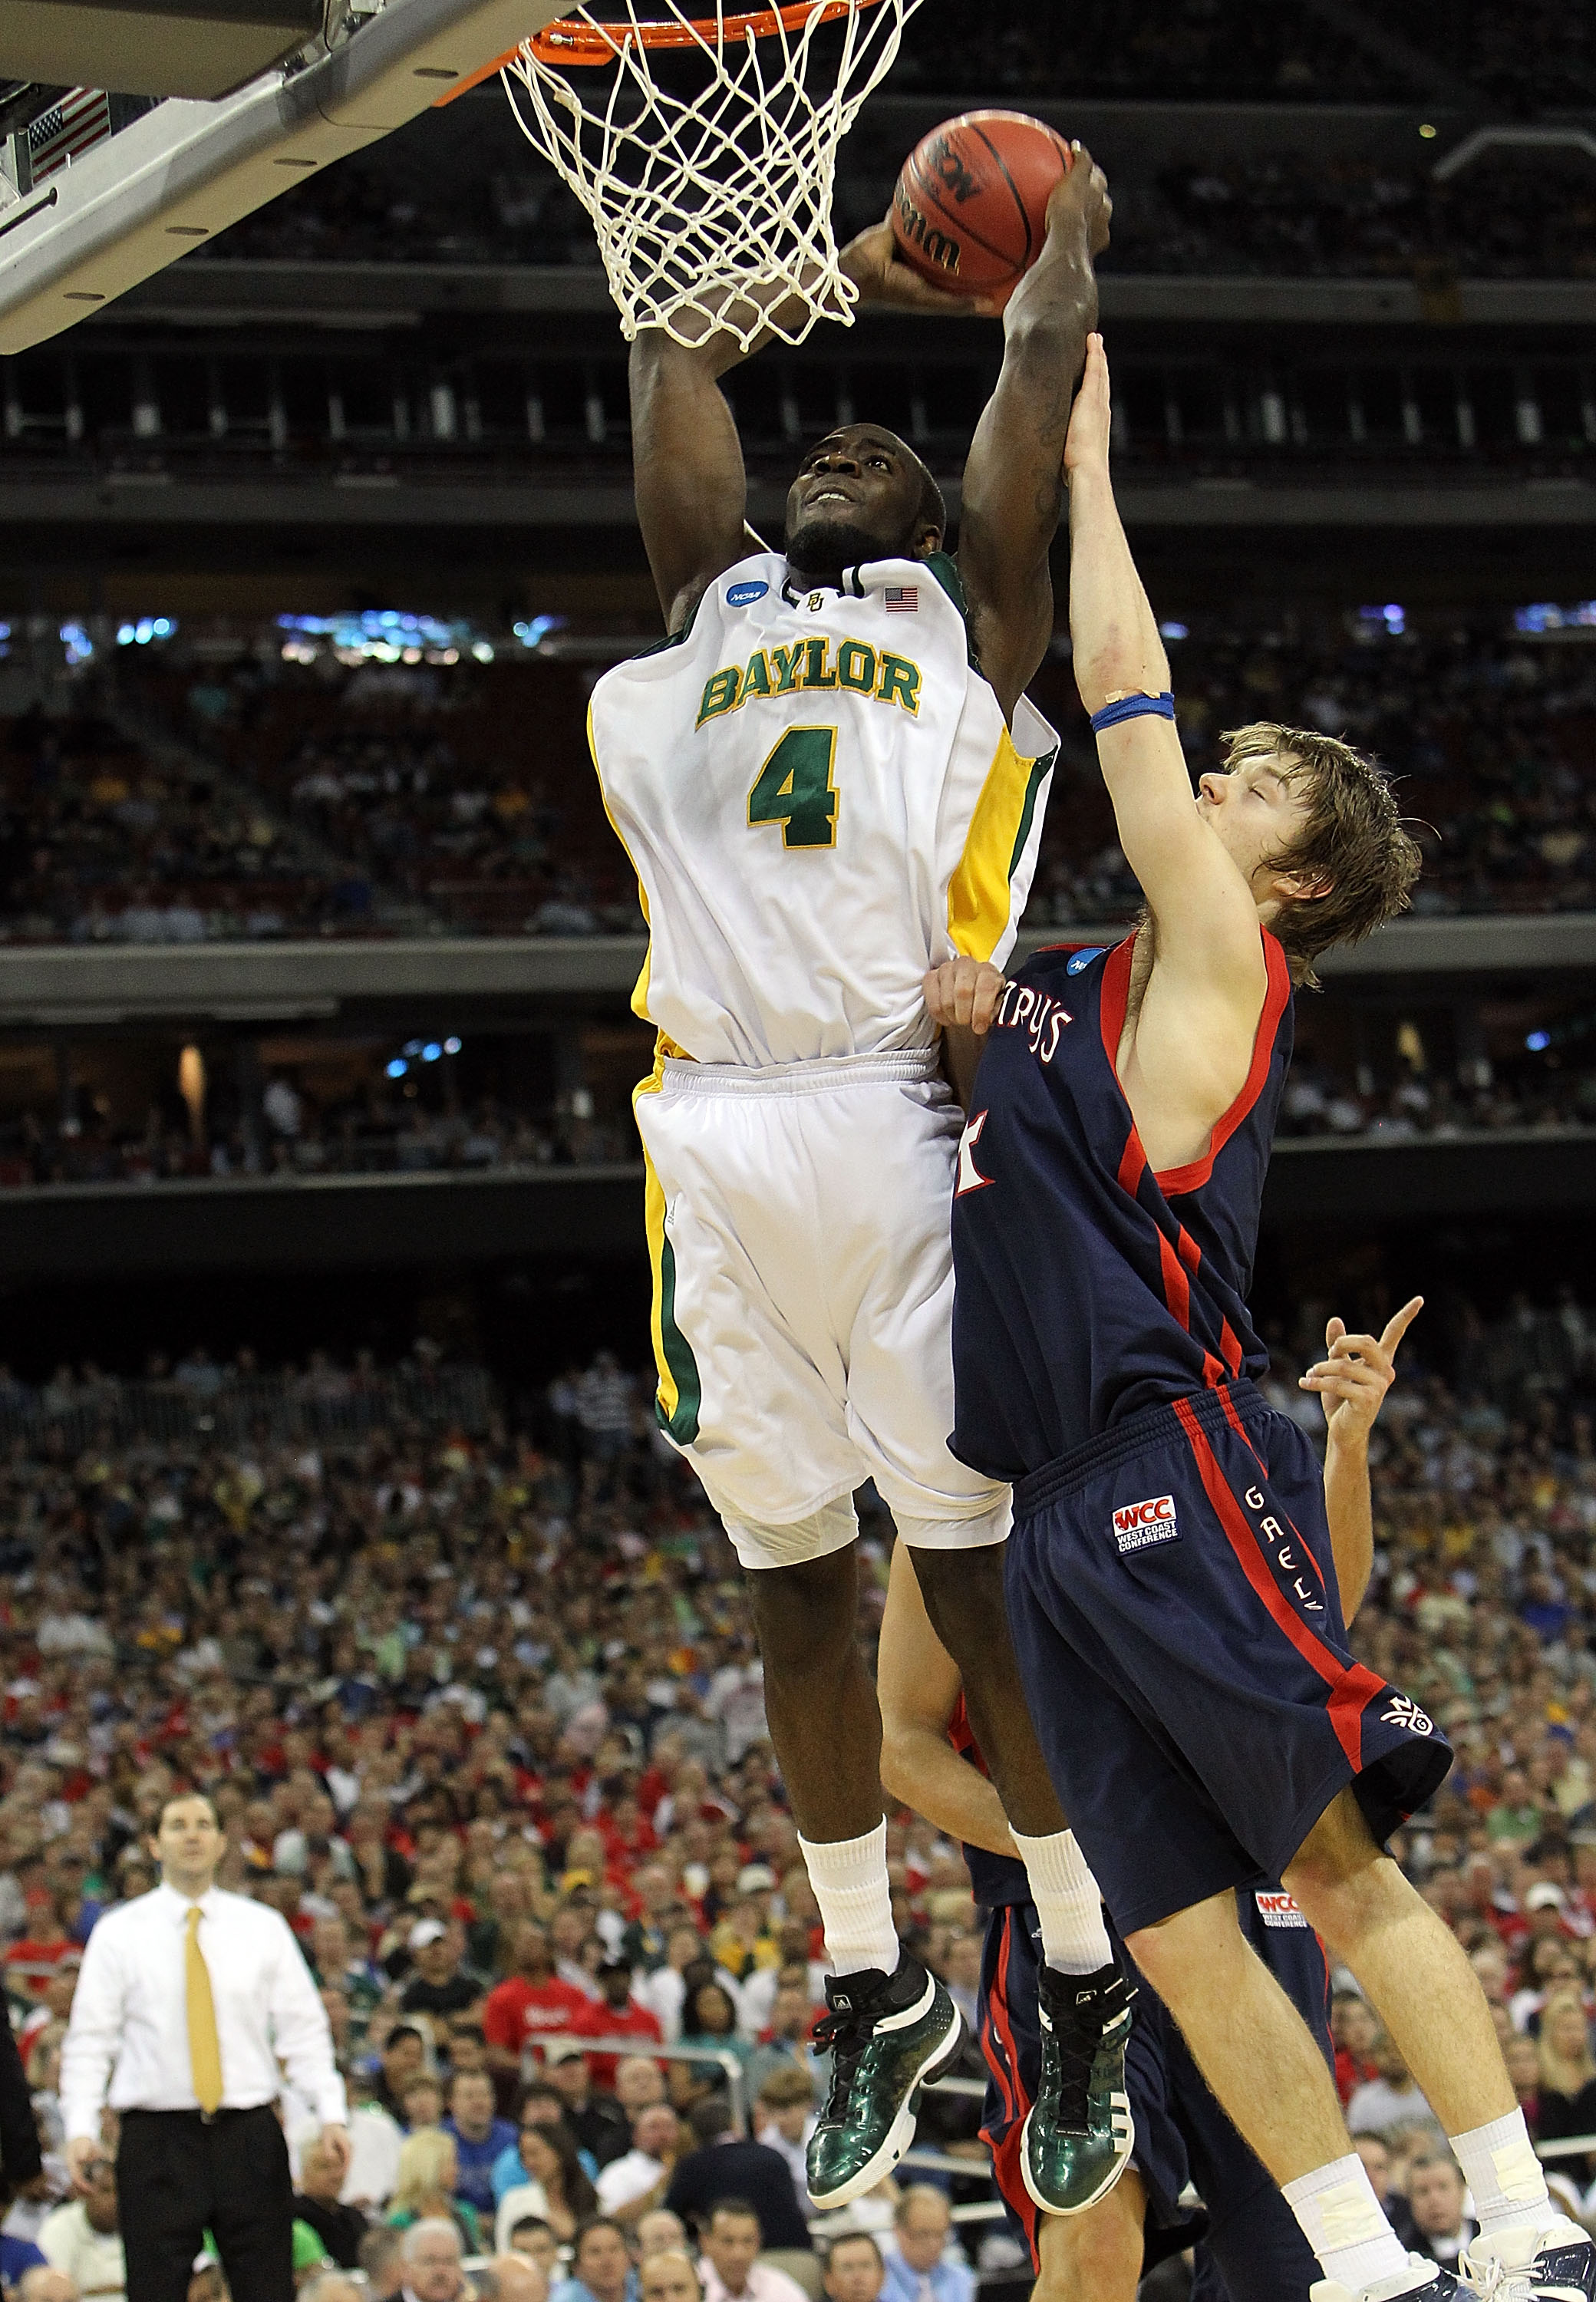 HOUSTON - MARCH 26:  Forward Quincy Acy #4 of the Baylor Bears makes a slam dunk against Matthew Dellavedova #4 of the St. Mary's Gaels during the south regional semifinal of the 2010 NCAA men's basketball tournament at Reliant Stadium on March 26, 2010 i